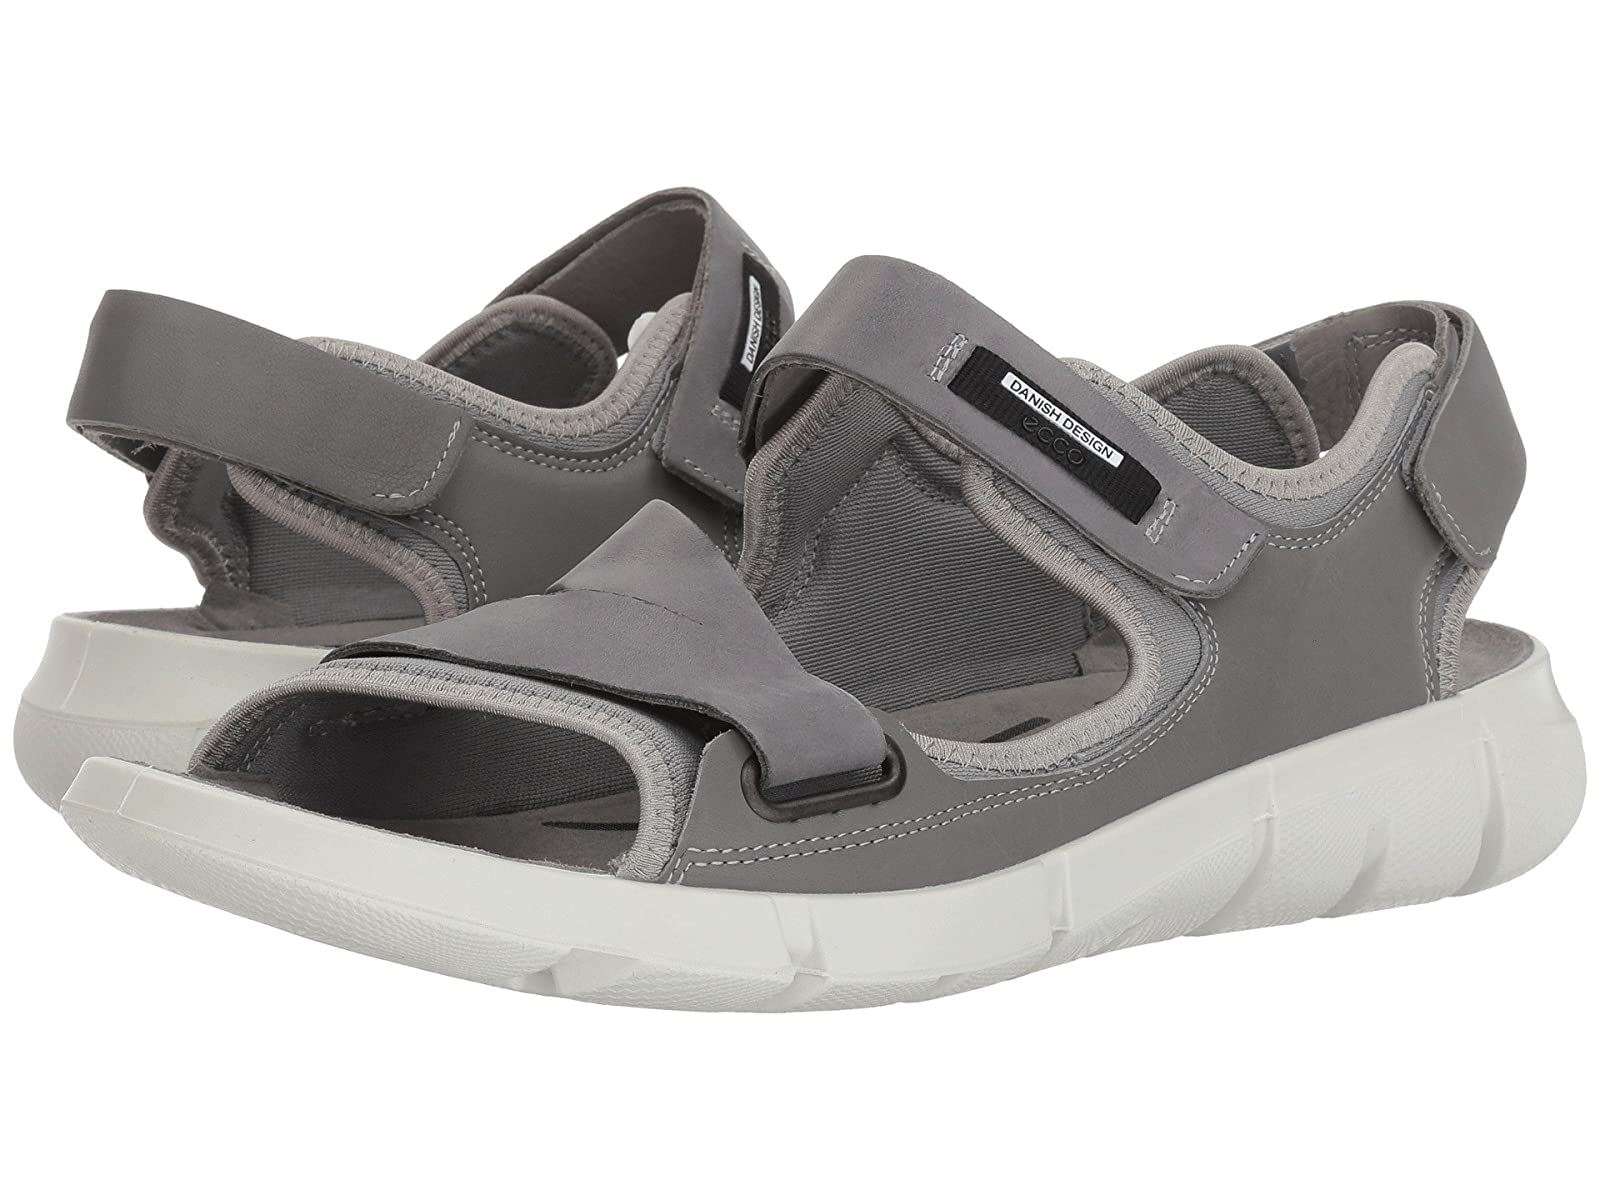 ECCO Intrinsic Sandal 2Comfortable and distinctive shoes